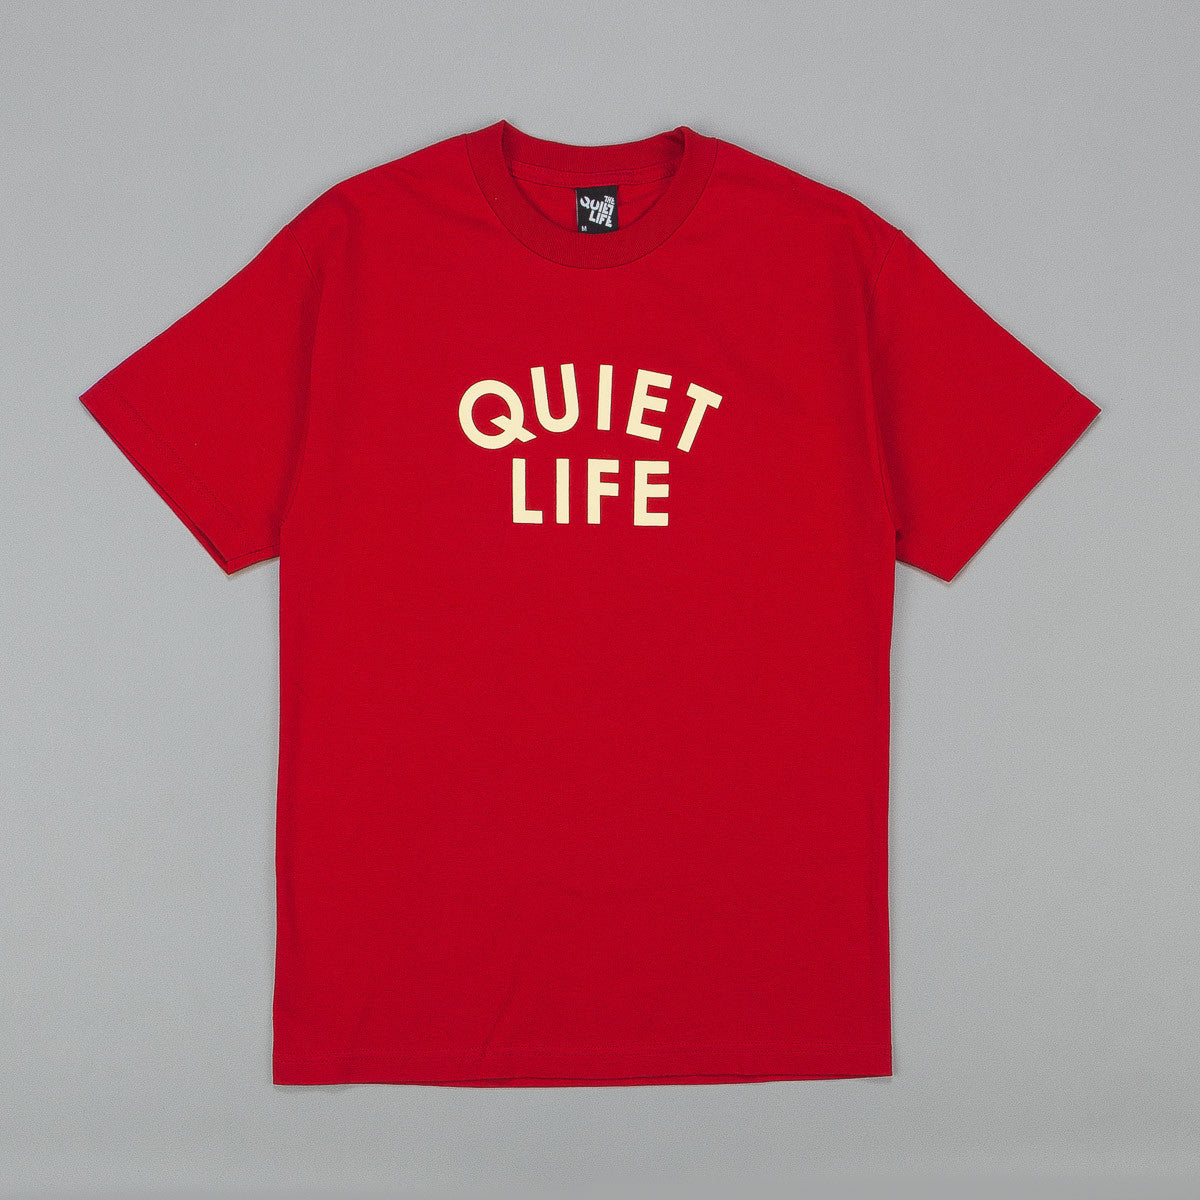 The Quiet Life Quiet Lifer T-Shirt